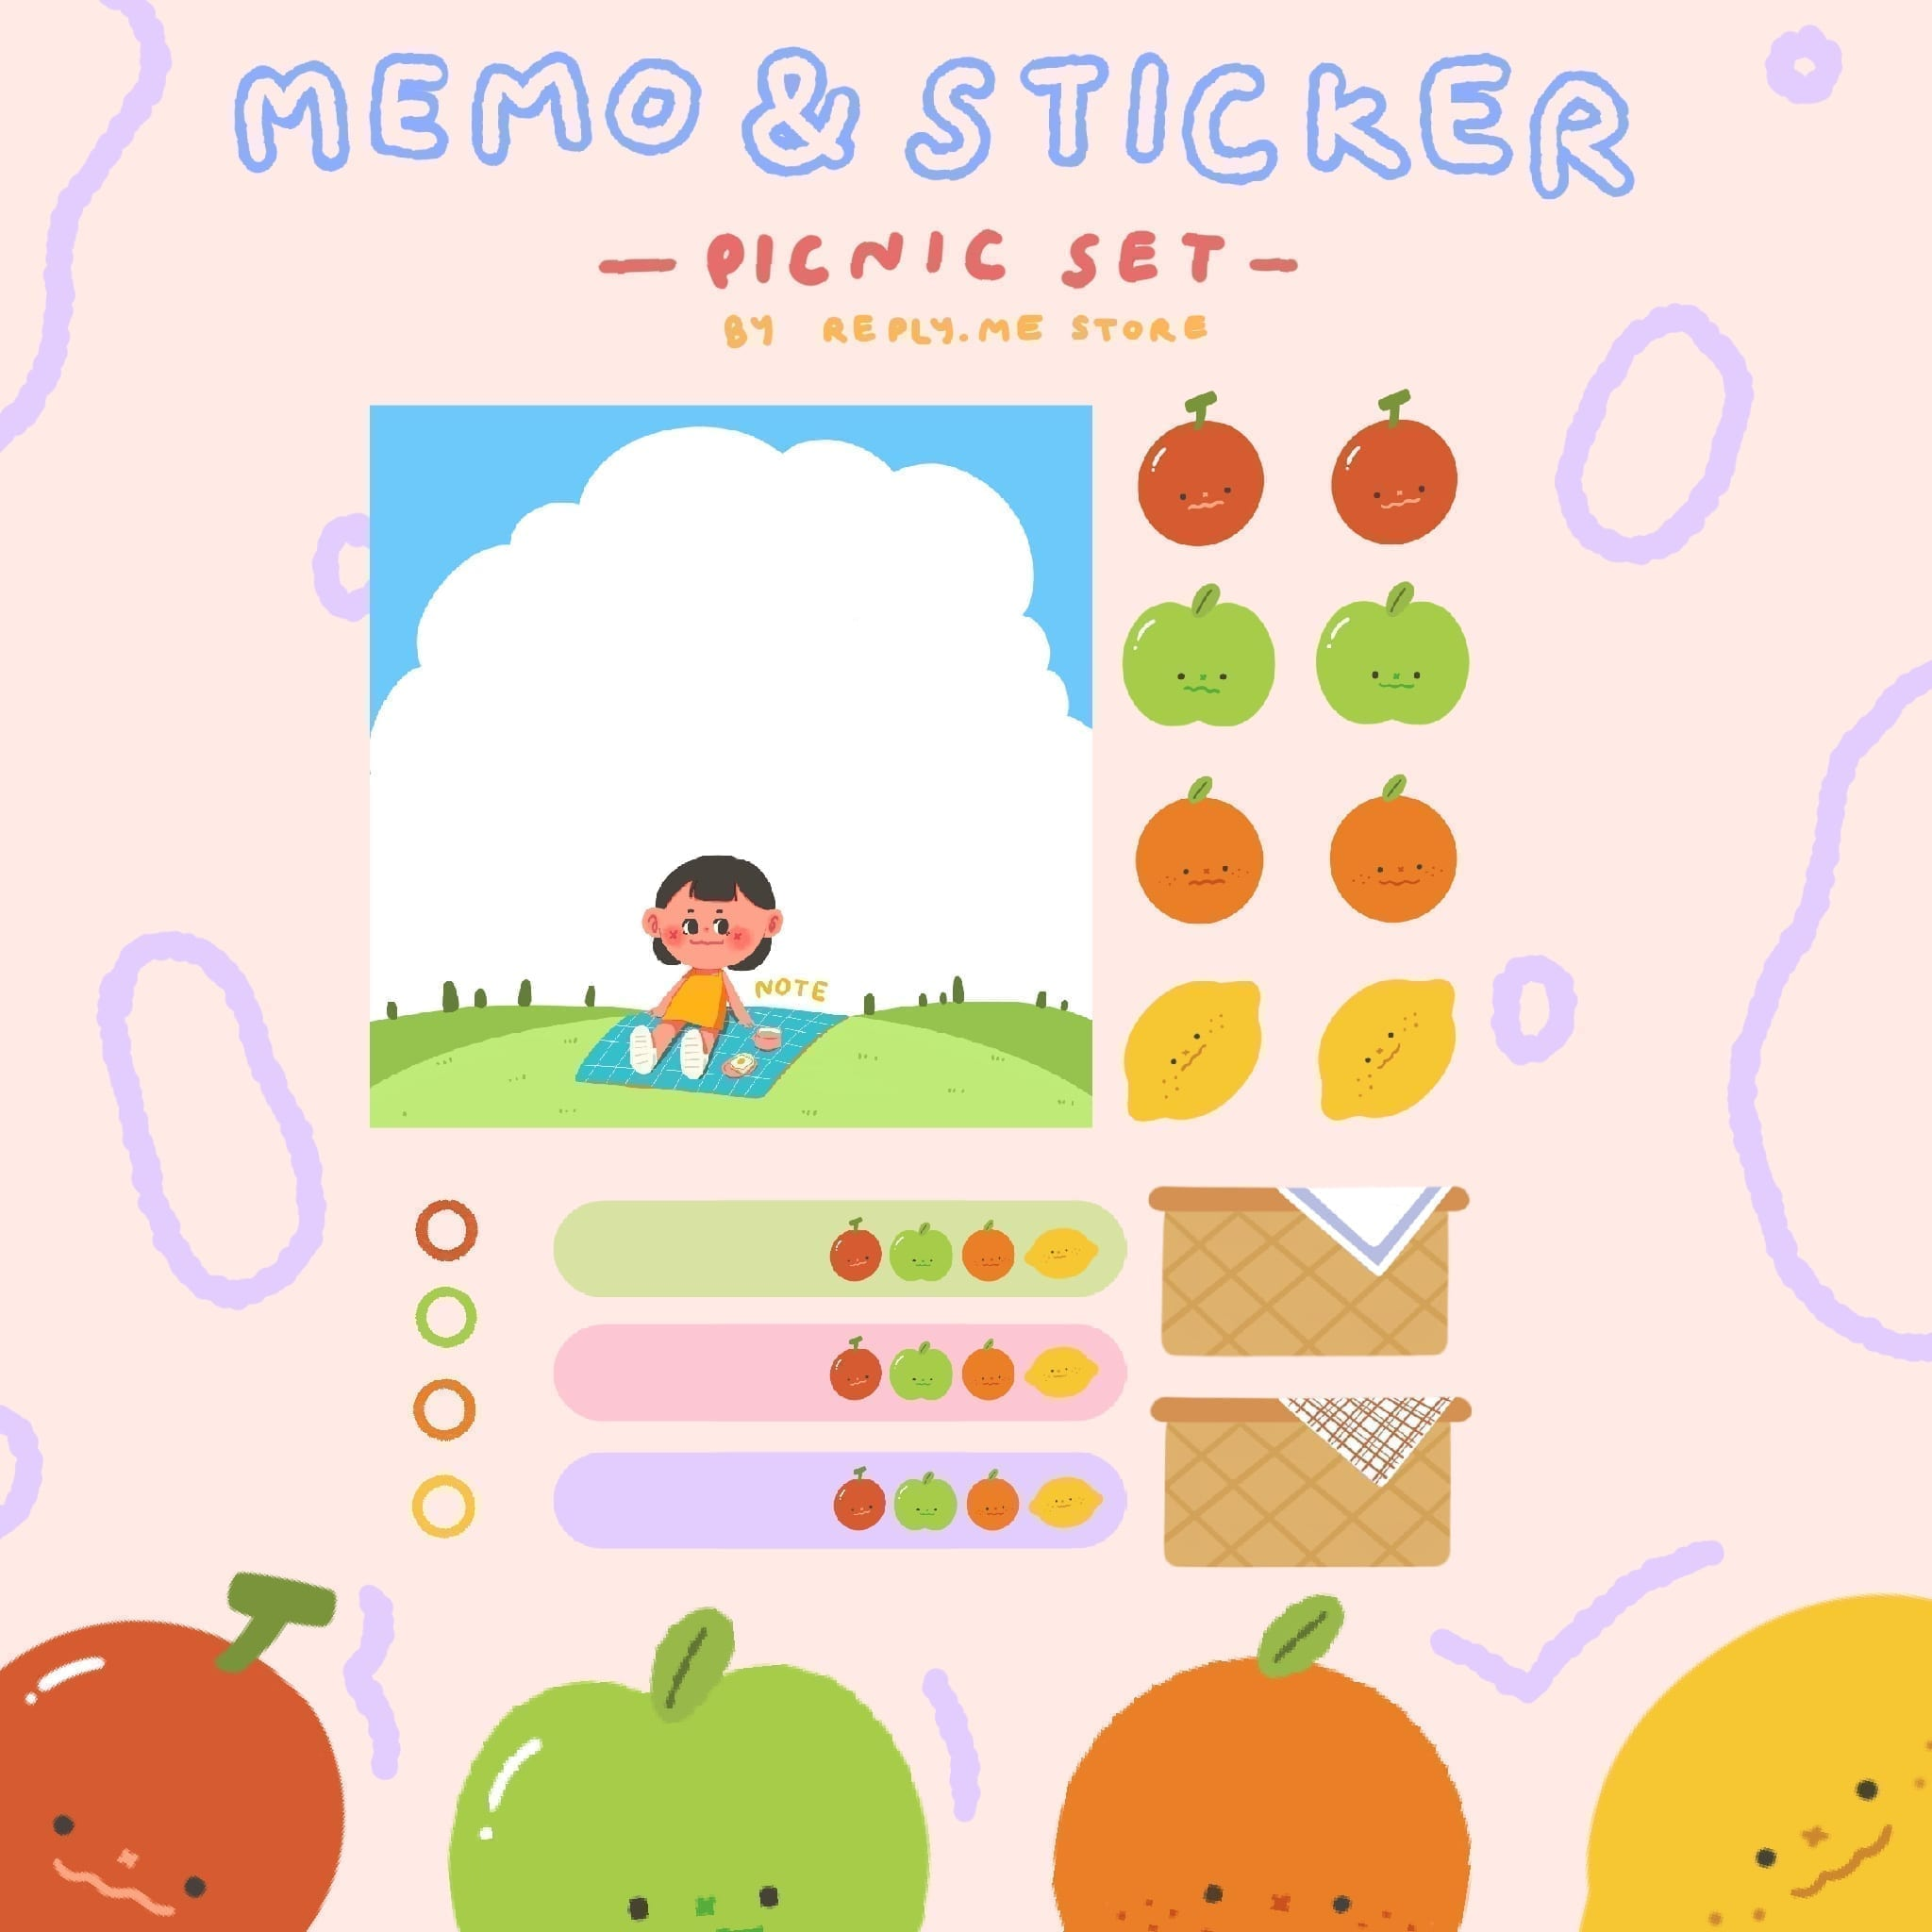 REPLY.ME | GOODNOTES MEMO & STICKER (Picnic set)